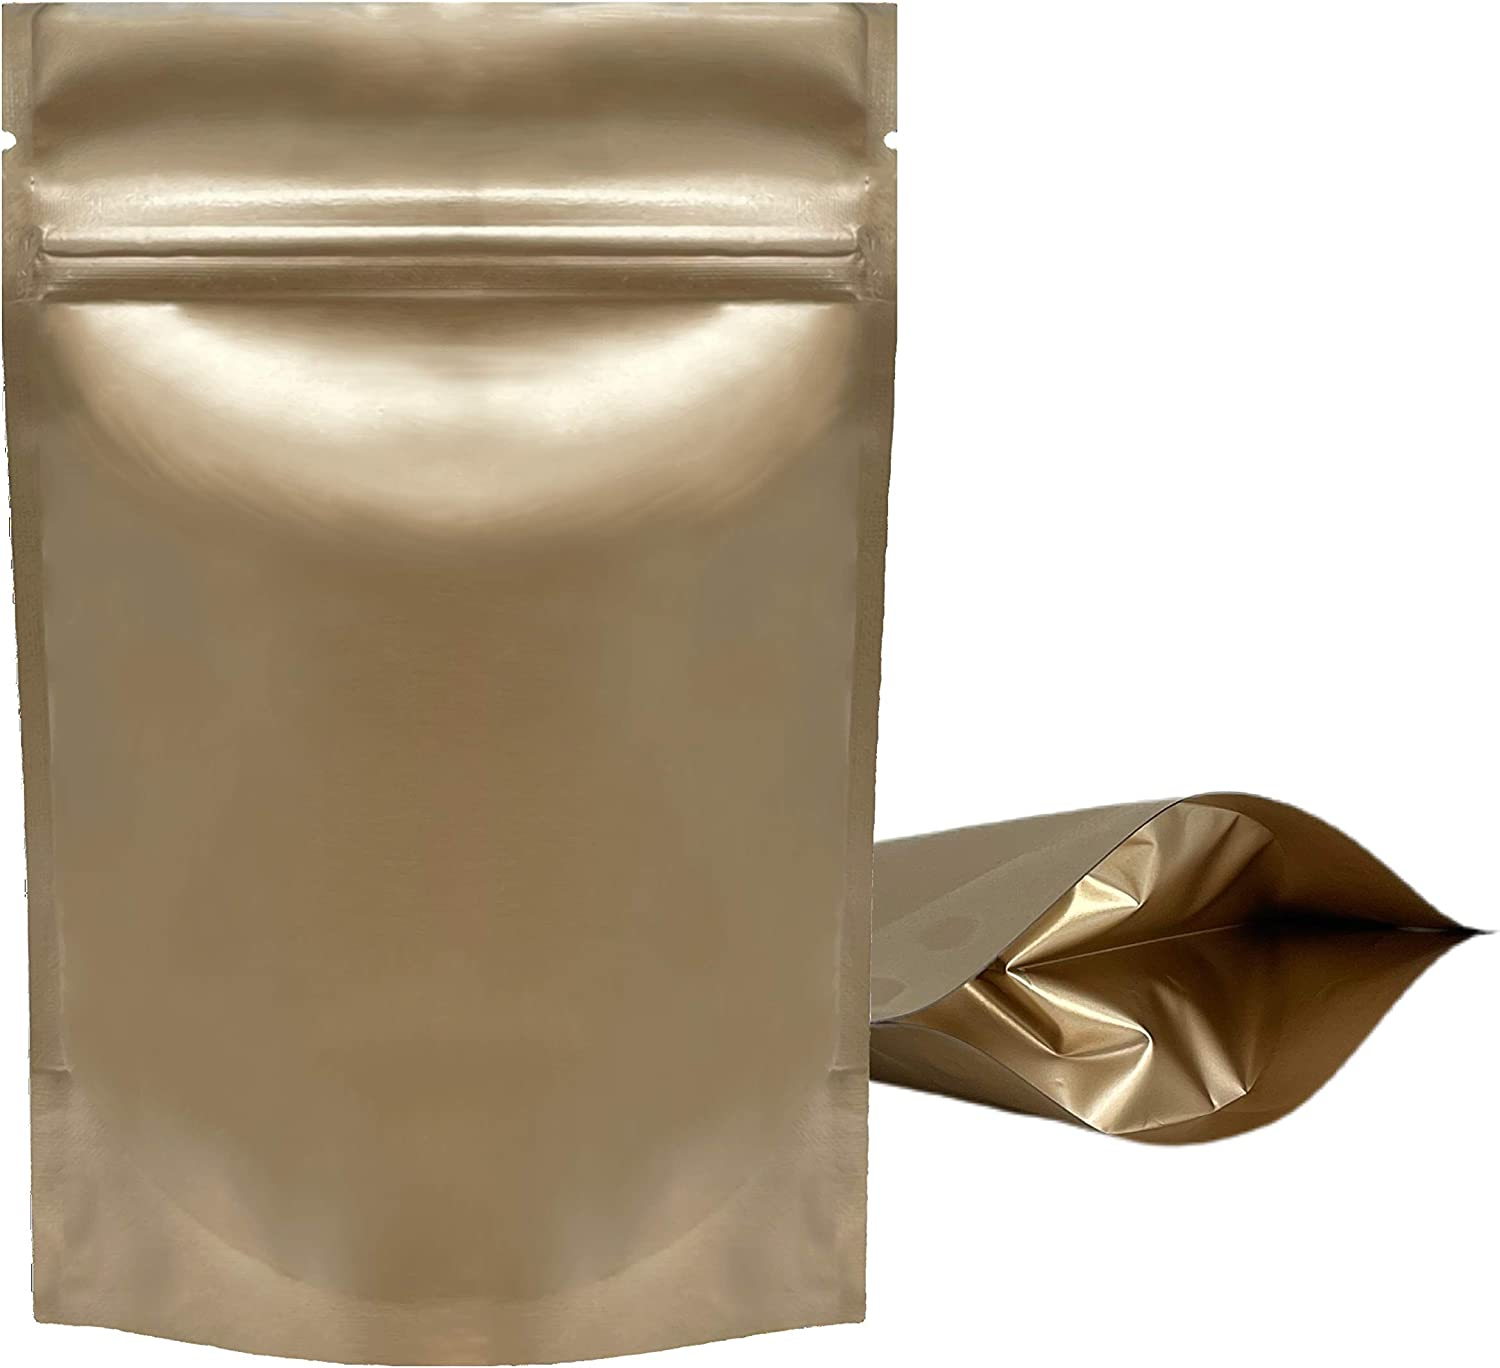 100PCS Resealable Smell Proof Stand Up and Flat Bags Aluminum Foil Pouch Bag 4 x 6 and 6 X 9 Inches Reclosable Mylar Ziplock Bag Food Storage Grip Seal Wrap (Gold Stand UP, 4X6 Inch)